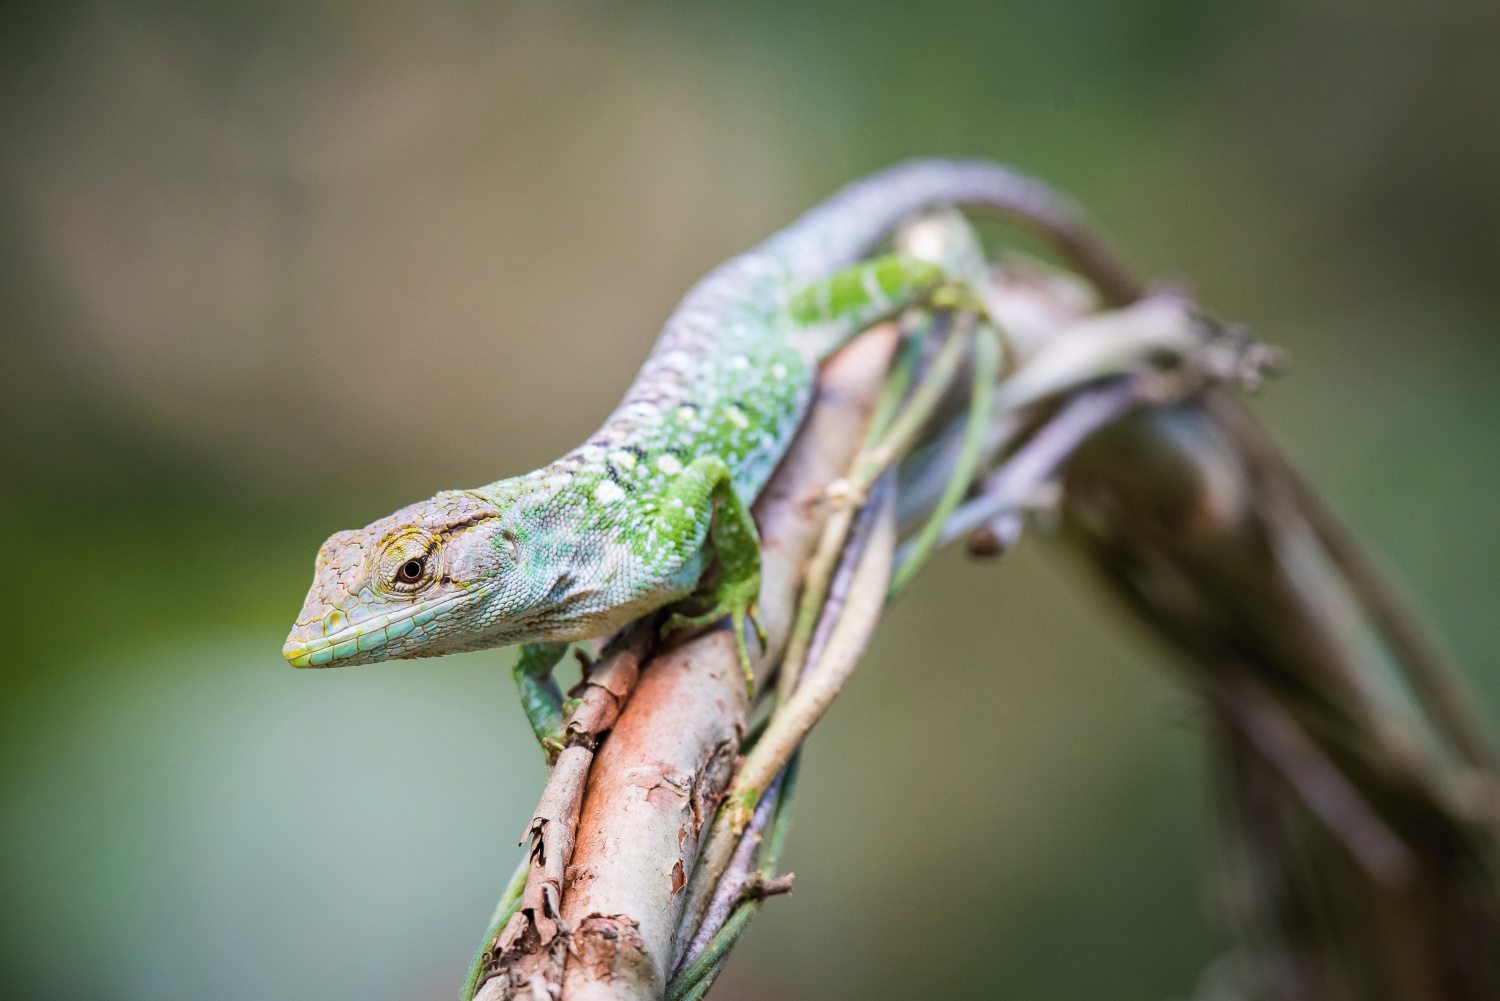 The Lizard (Trinidad and Tobago)